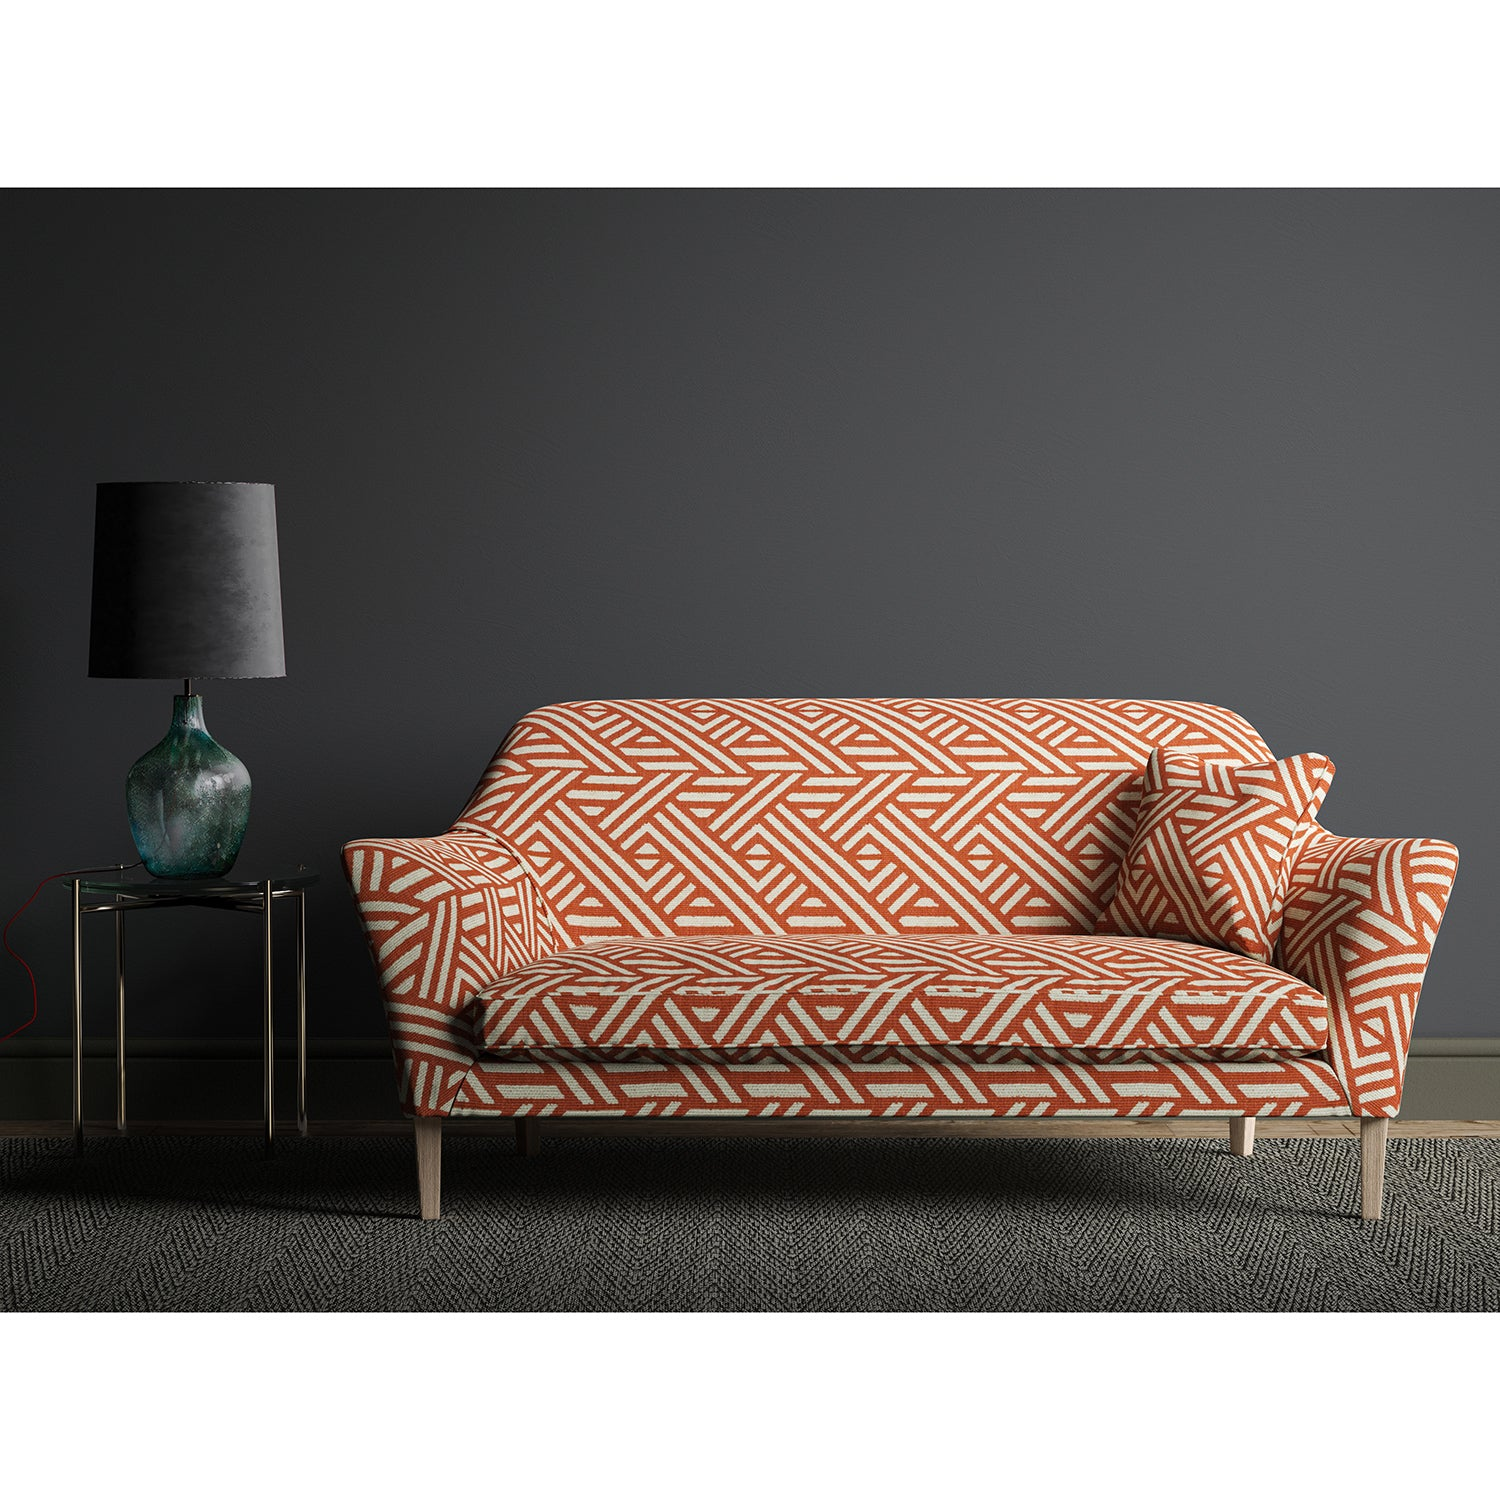 Sofa upholstered in a large scale geometric print with orange and white colours